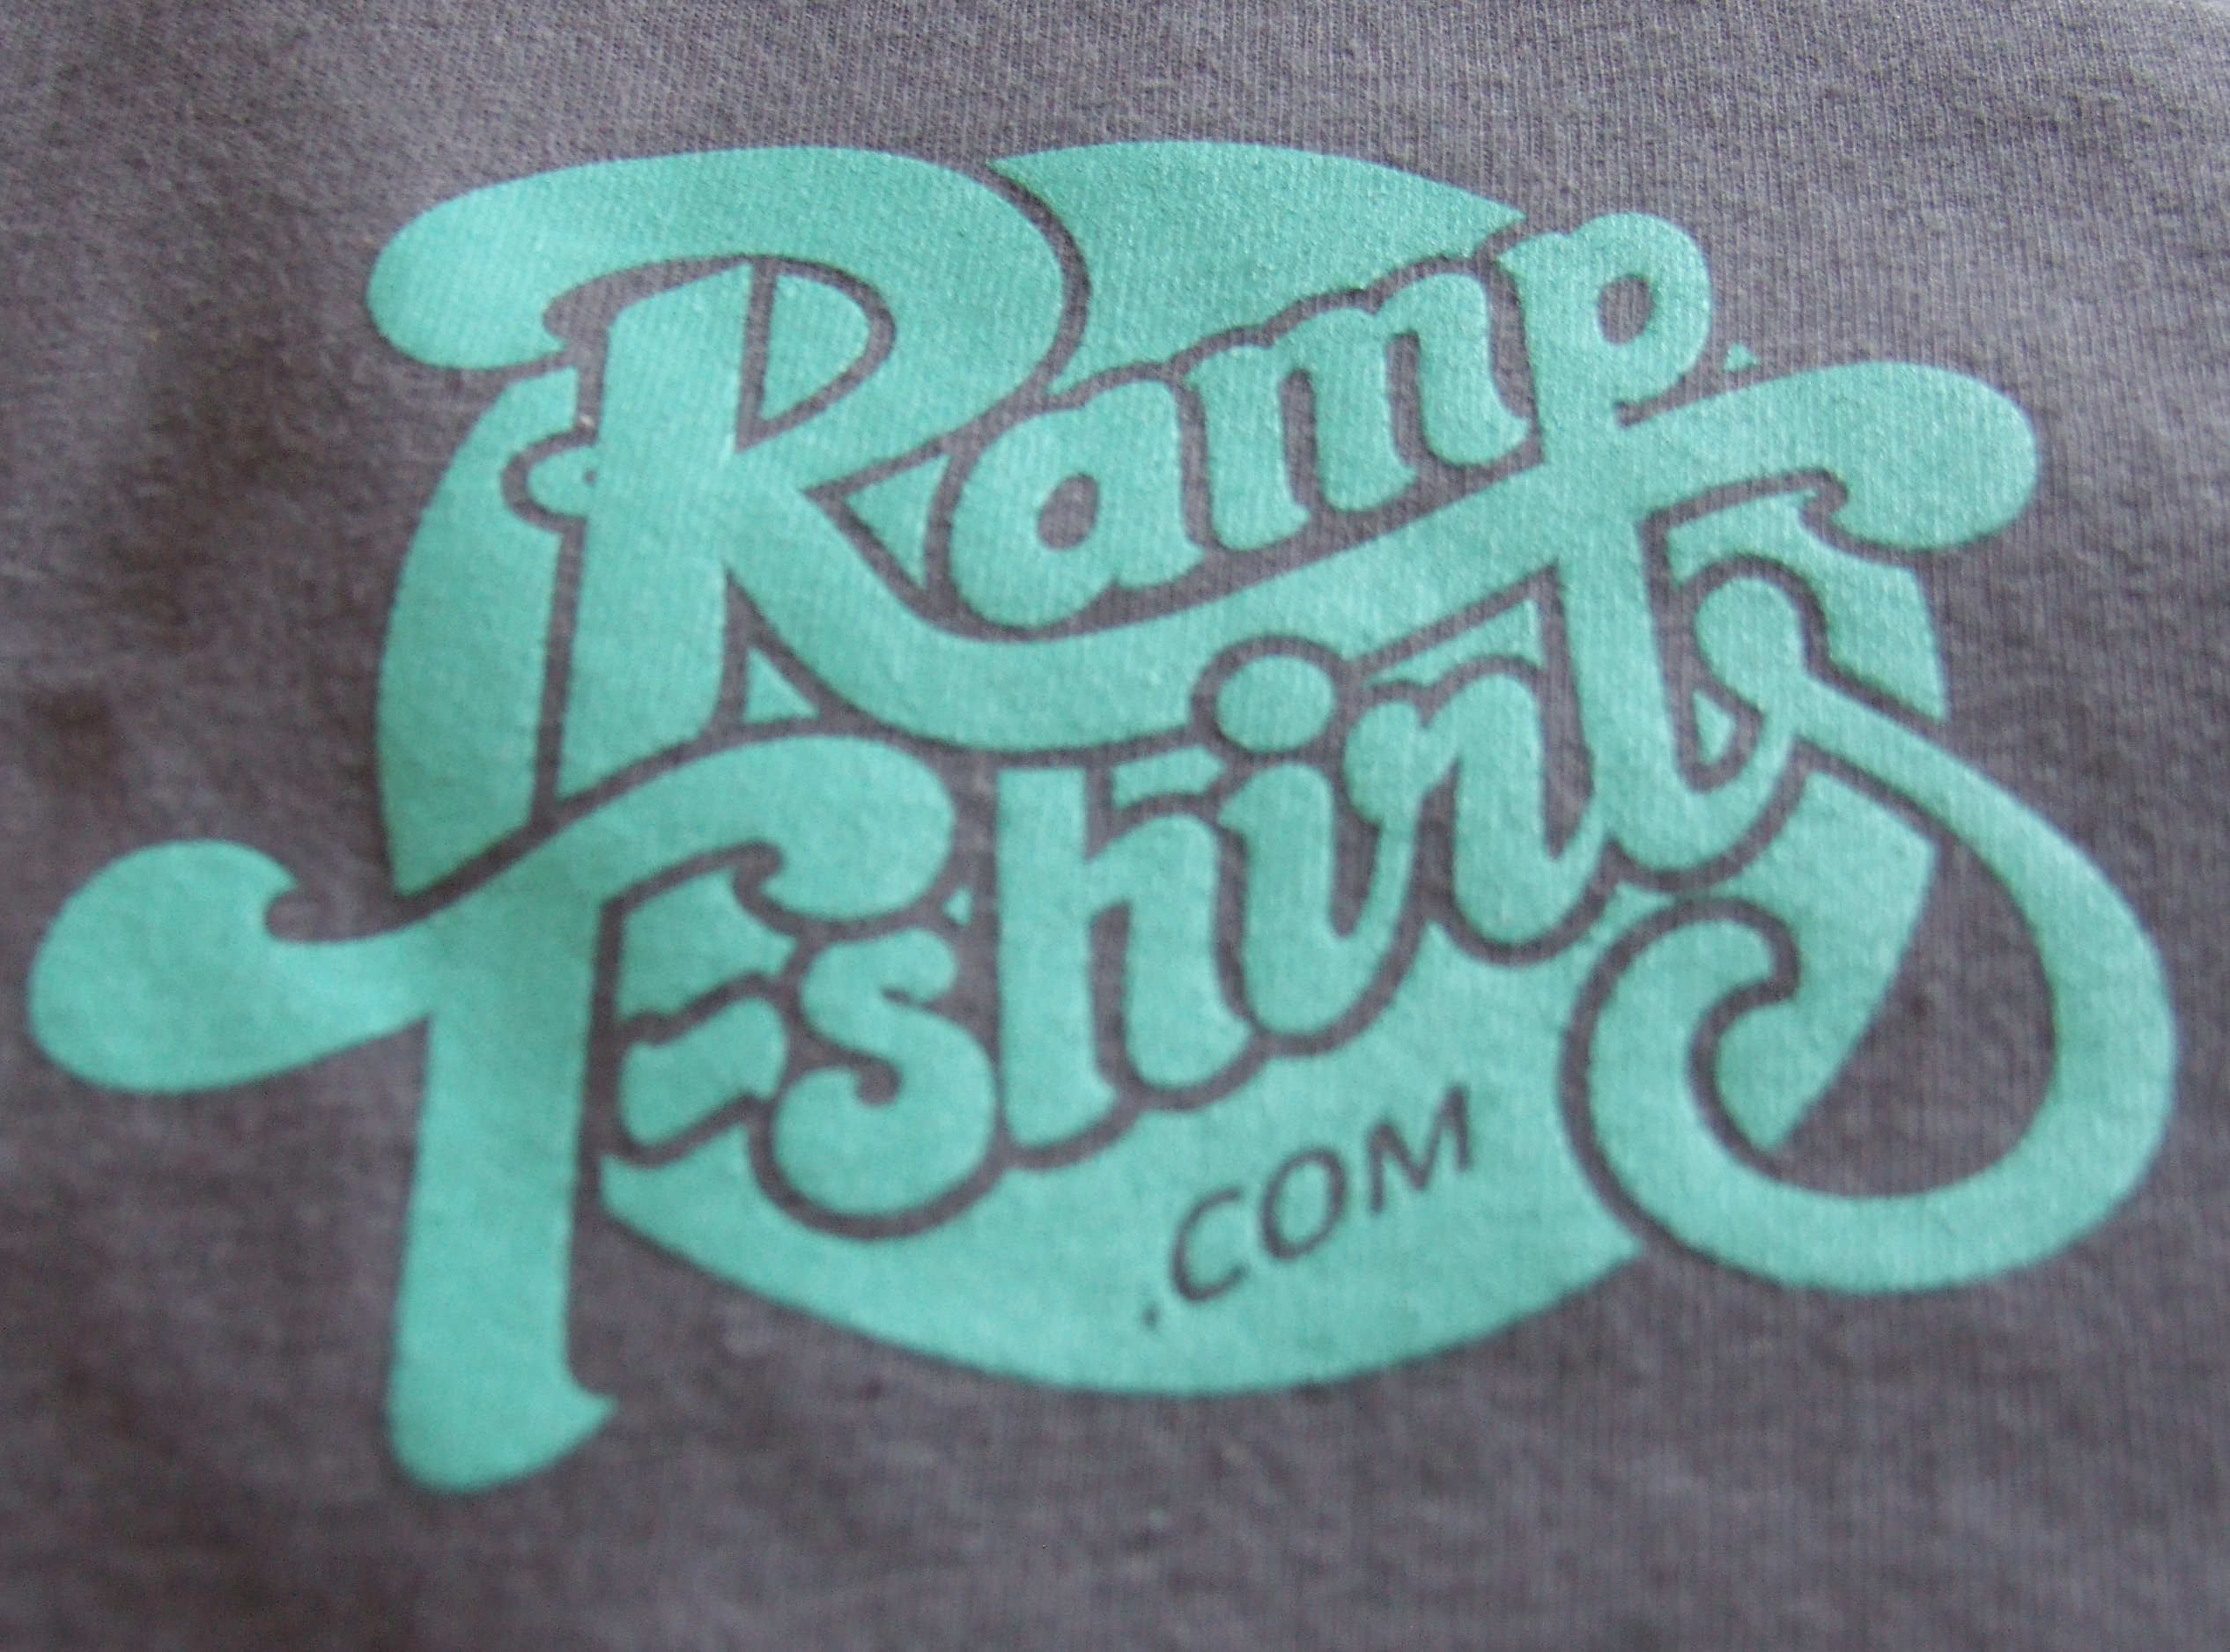 Ramp t-shirts Limited T-shirt detail